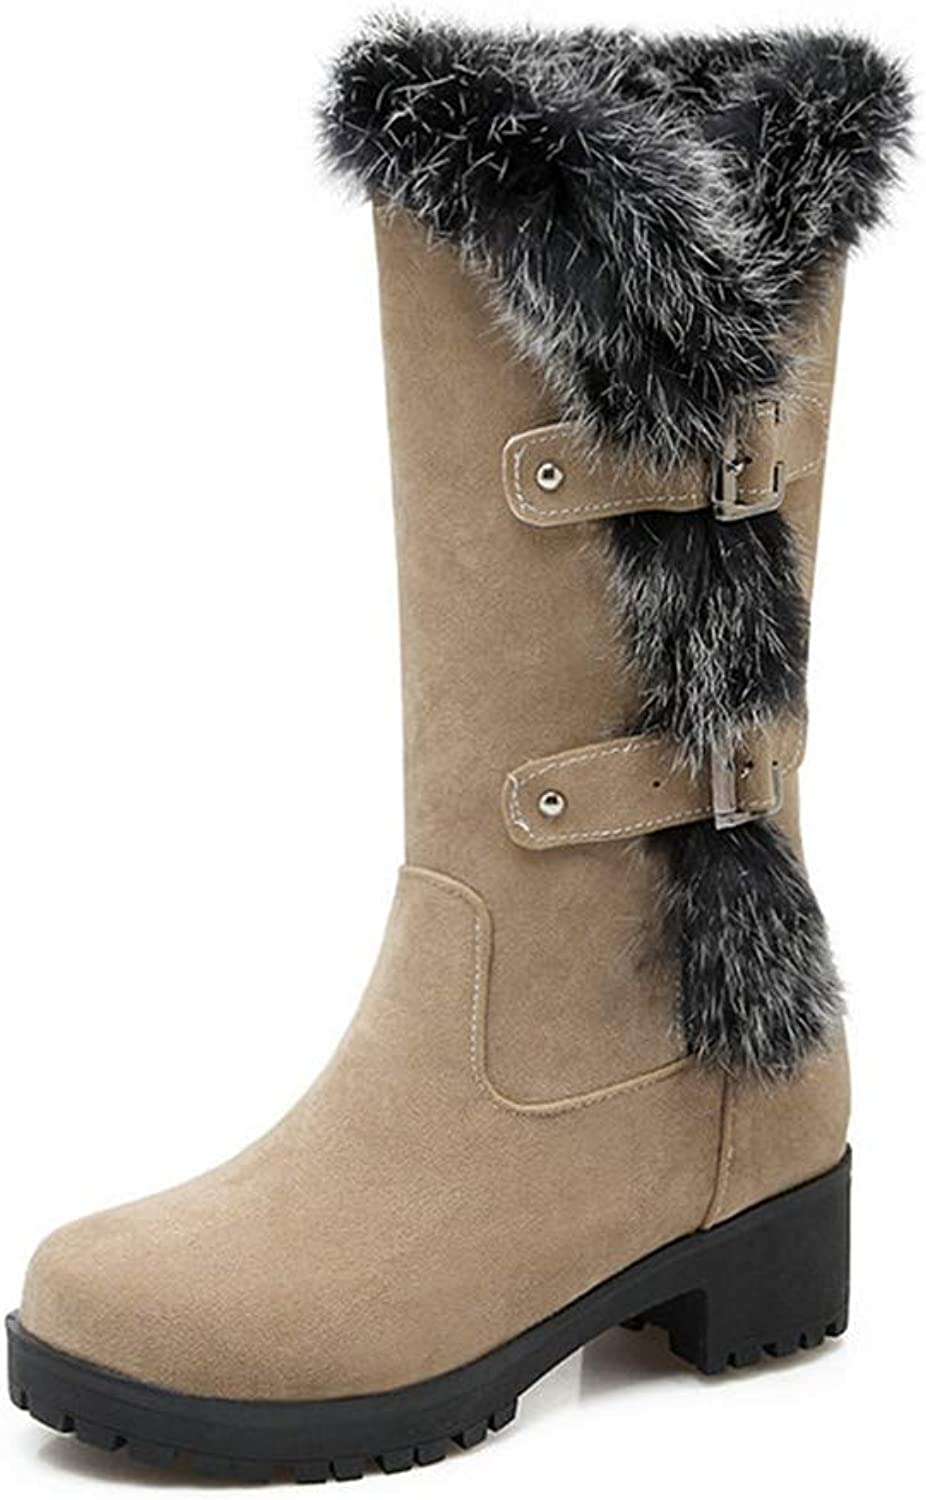 T-JULY Women Autumn Thermal Knee-high Slip-Resistant Waterproof Snow Faux Suede Leather Rabbit Fur Winter Boots